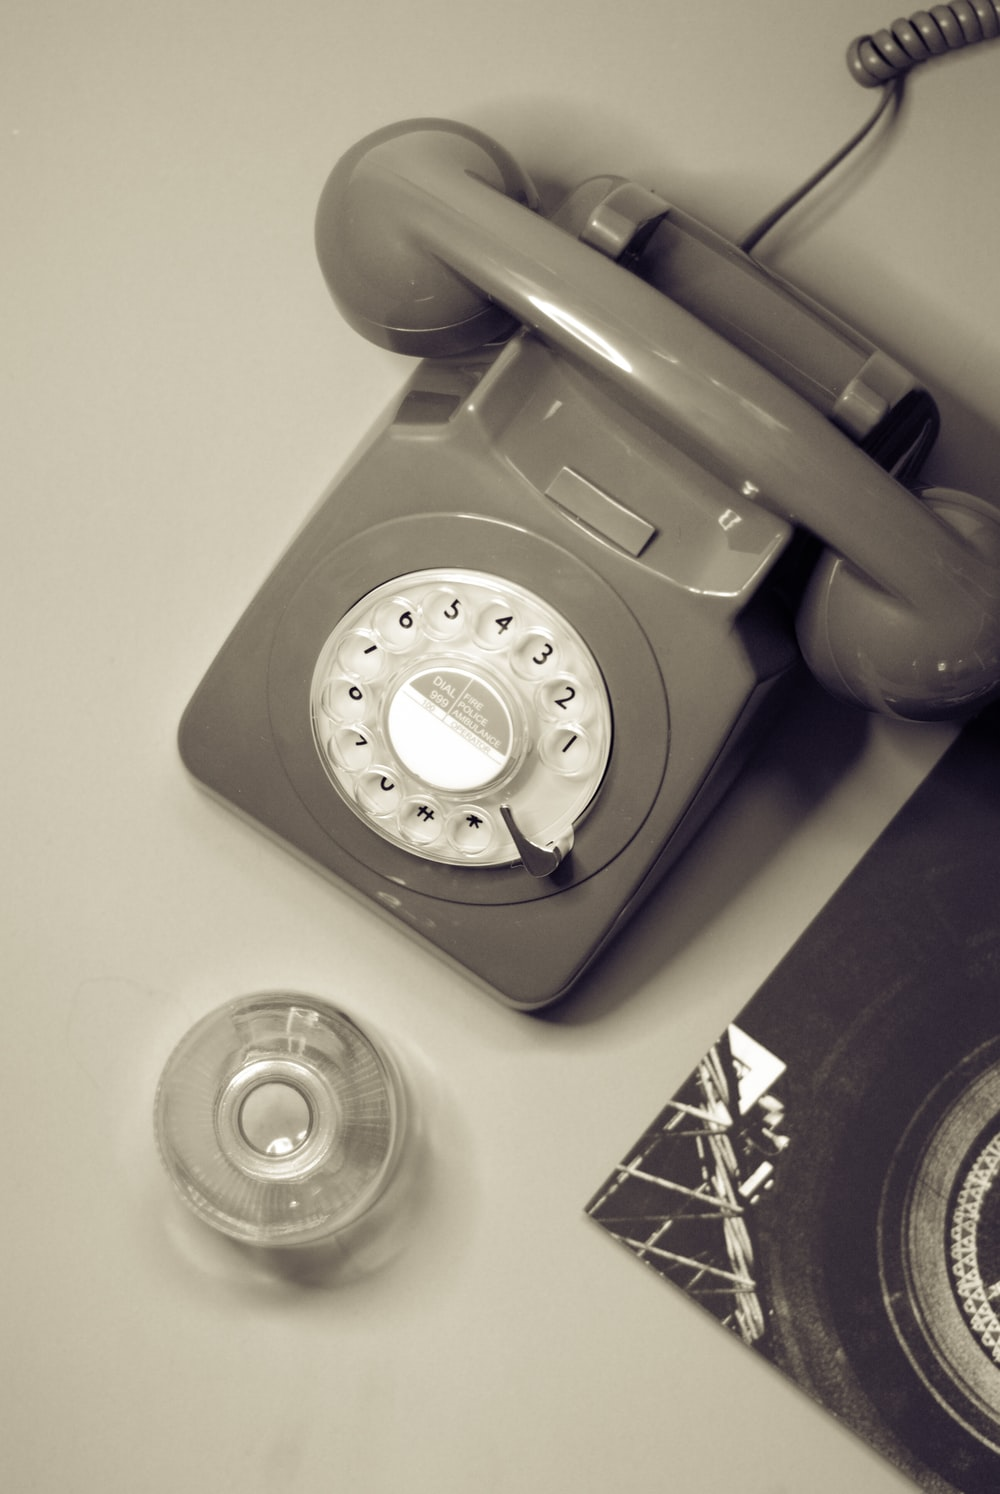 brown rotary phone on white table